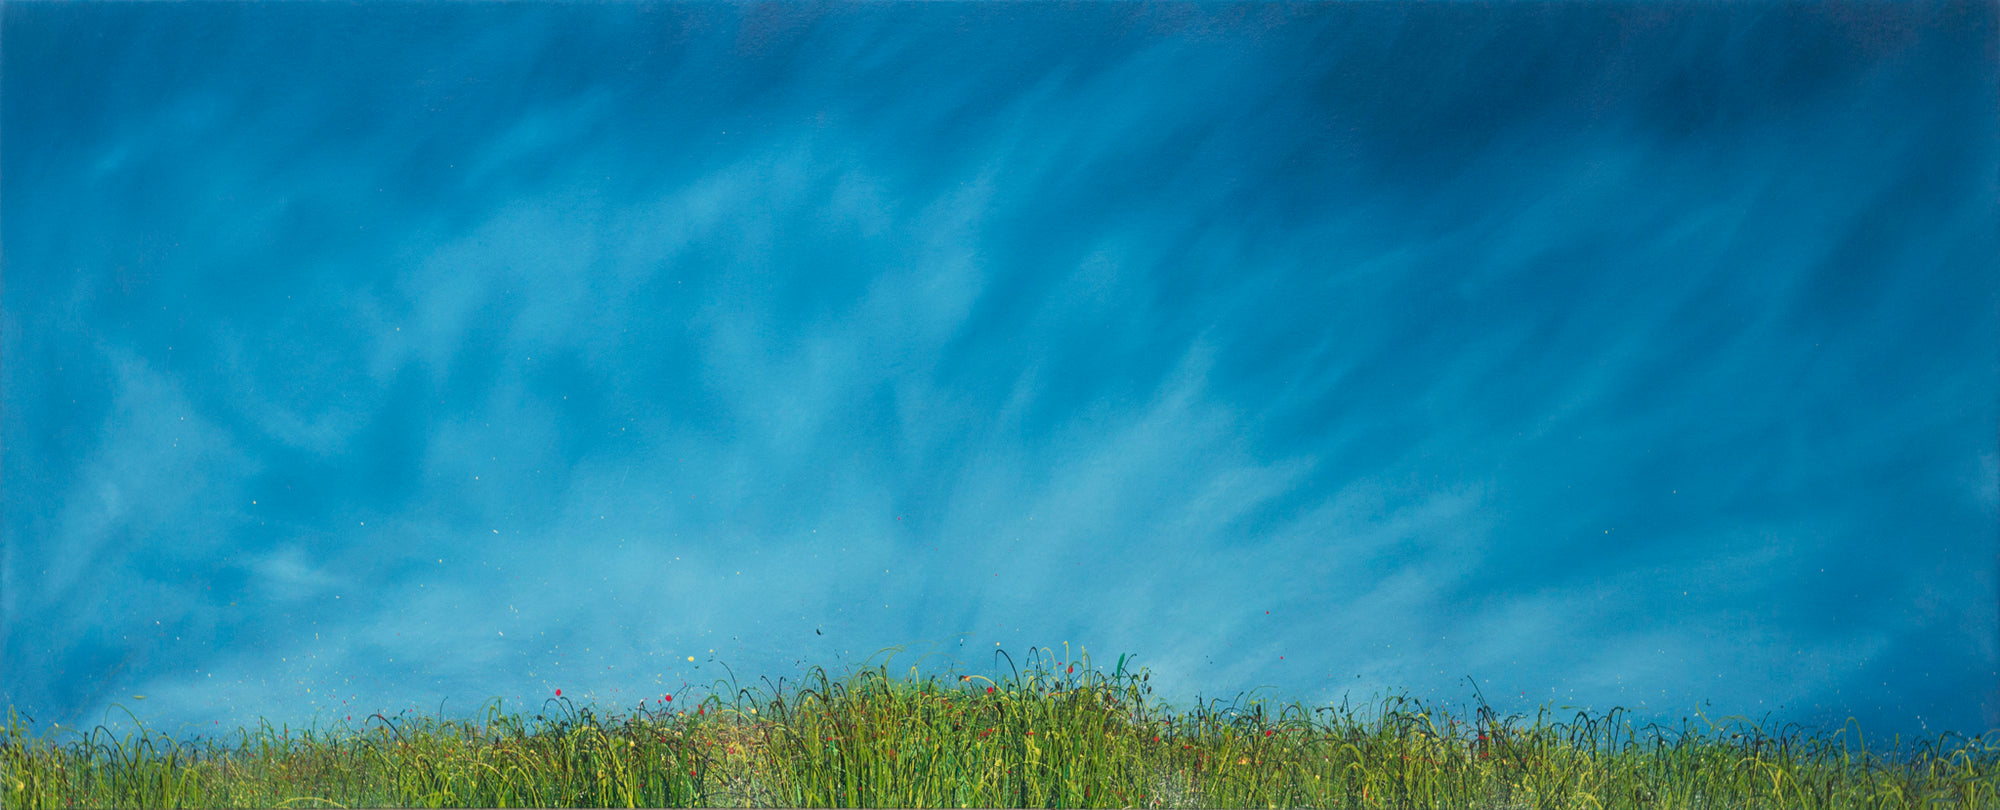 I glanced, Full image of An oil painting of wild grasses and blue sky by British contemporary artist Royden Astrop